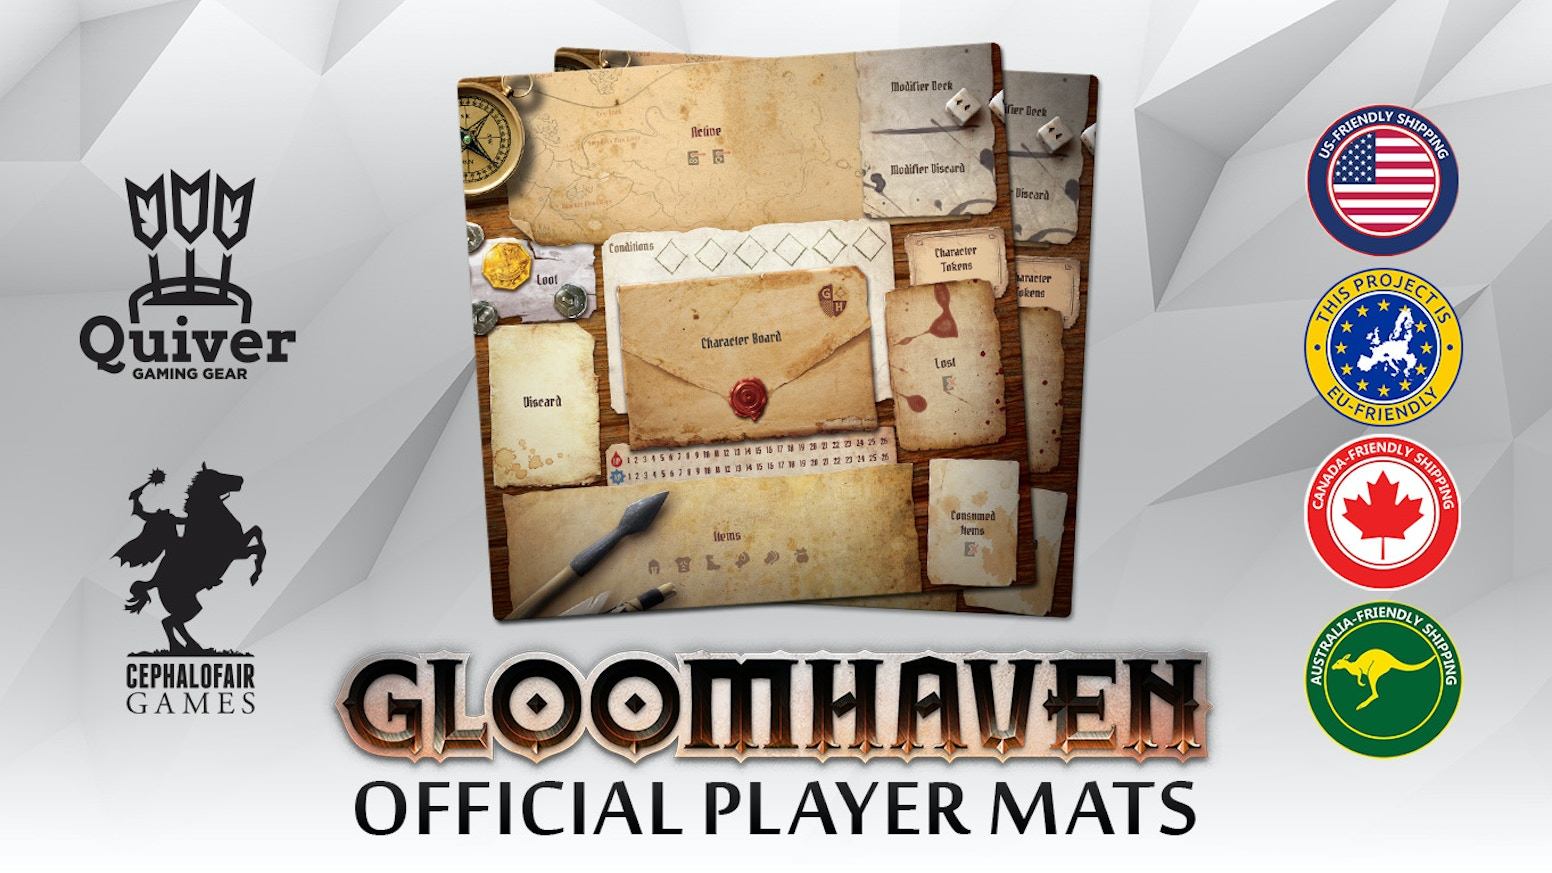 Officially licensed individual player mats for the massive hit board game: Gloomhaven